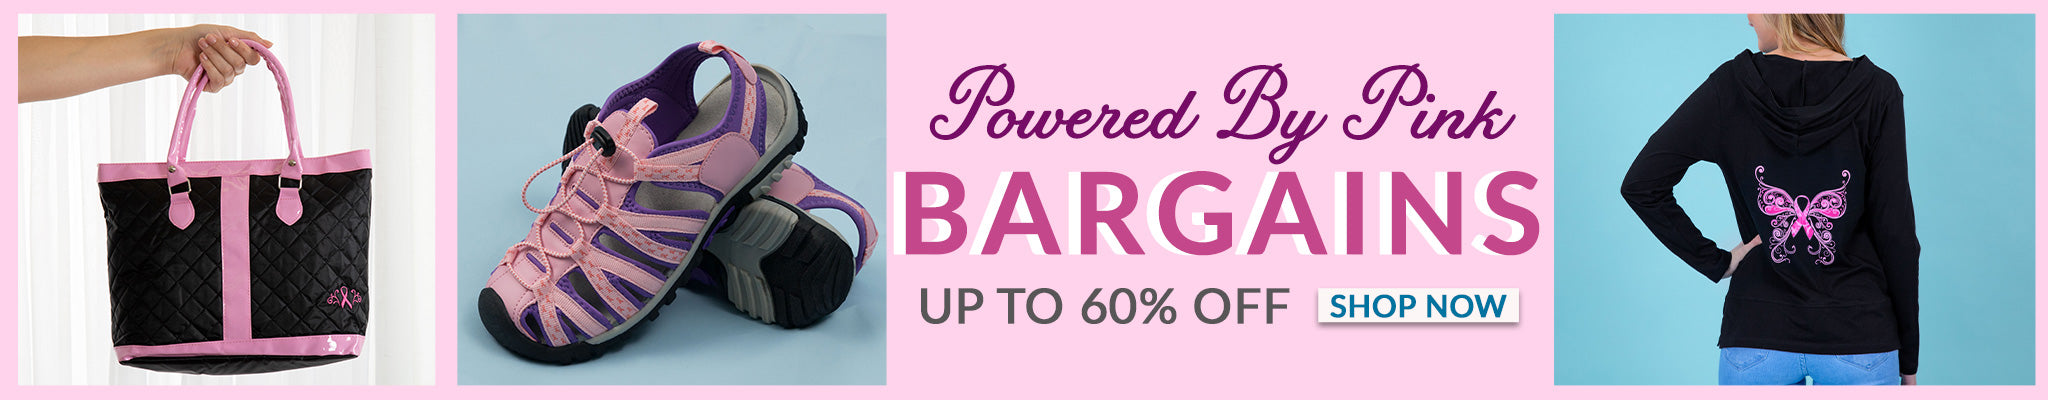 Powered by Pink Sale